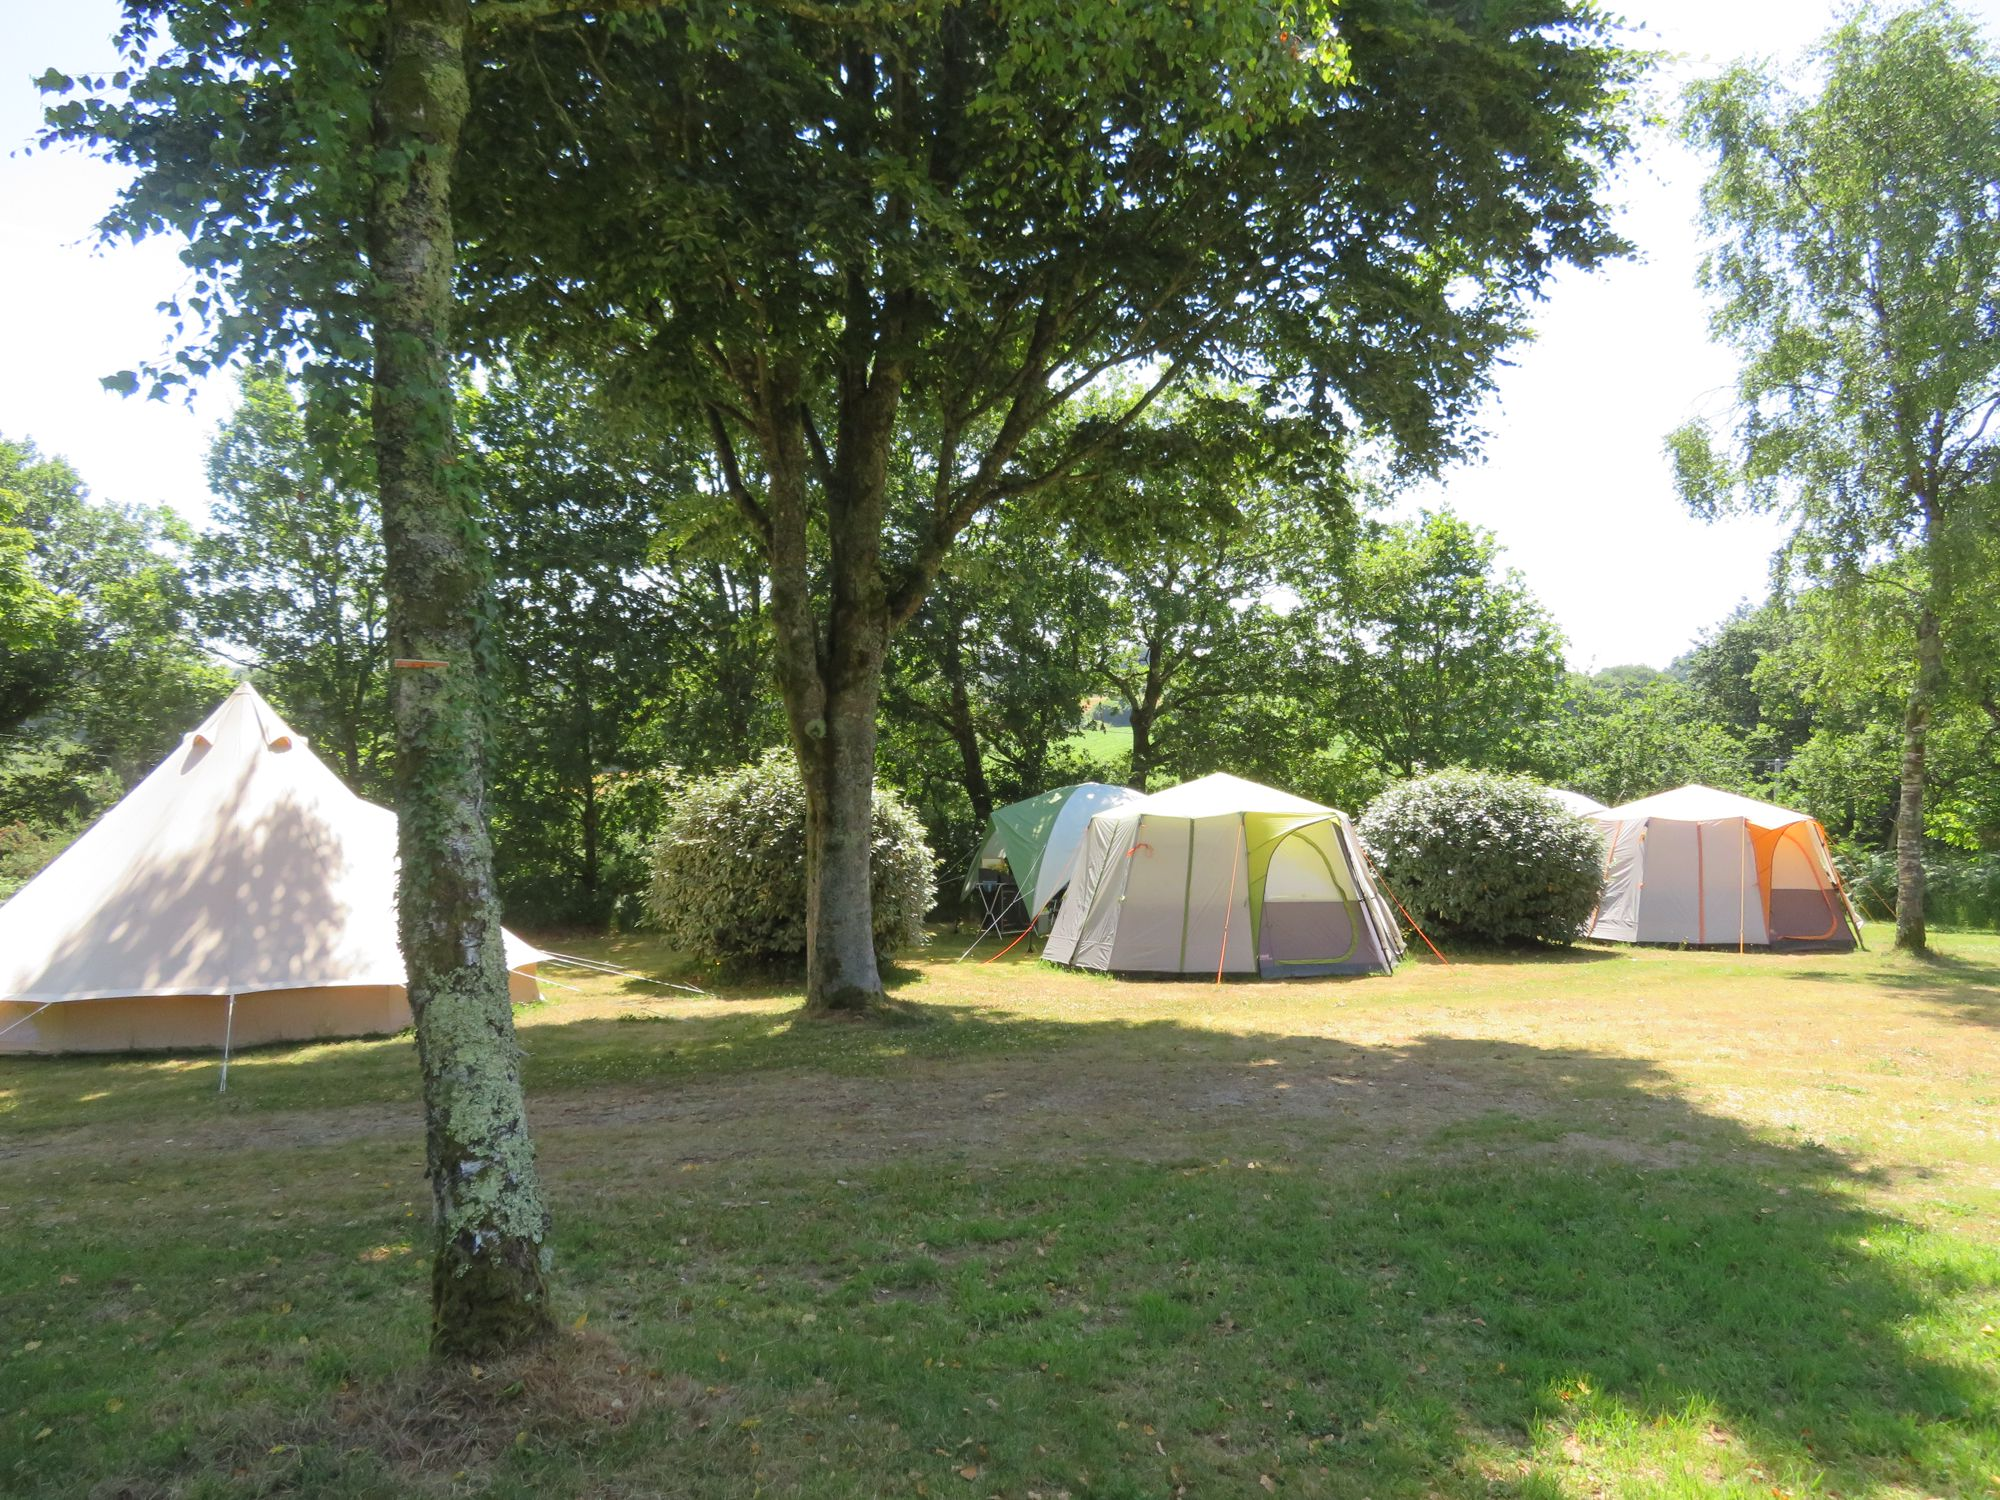 Campsites in Brittany - campsites europe france brittany at Cool Camping